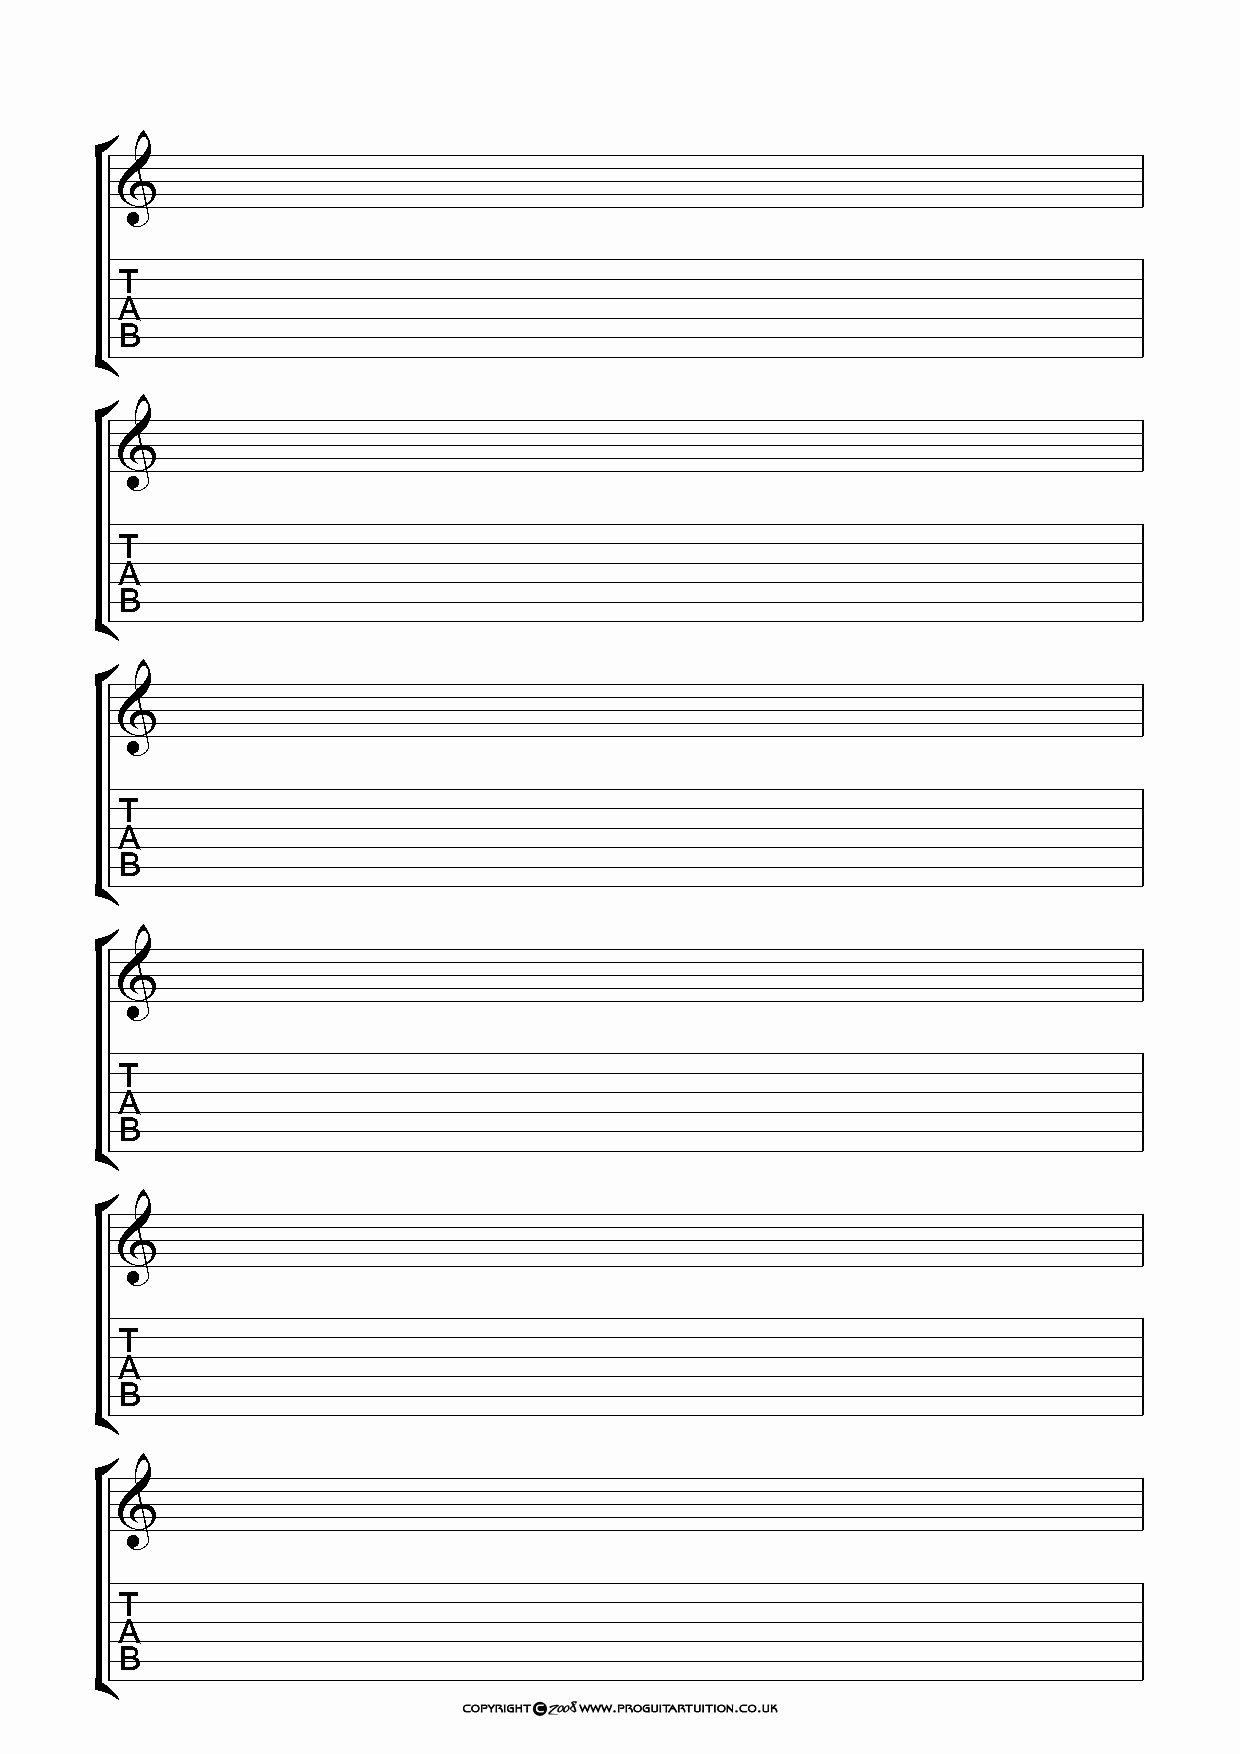 Blank Guitar Tab Unique Line Game Testing Jobs at Home